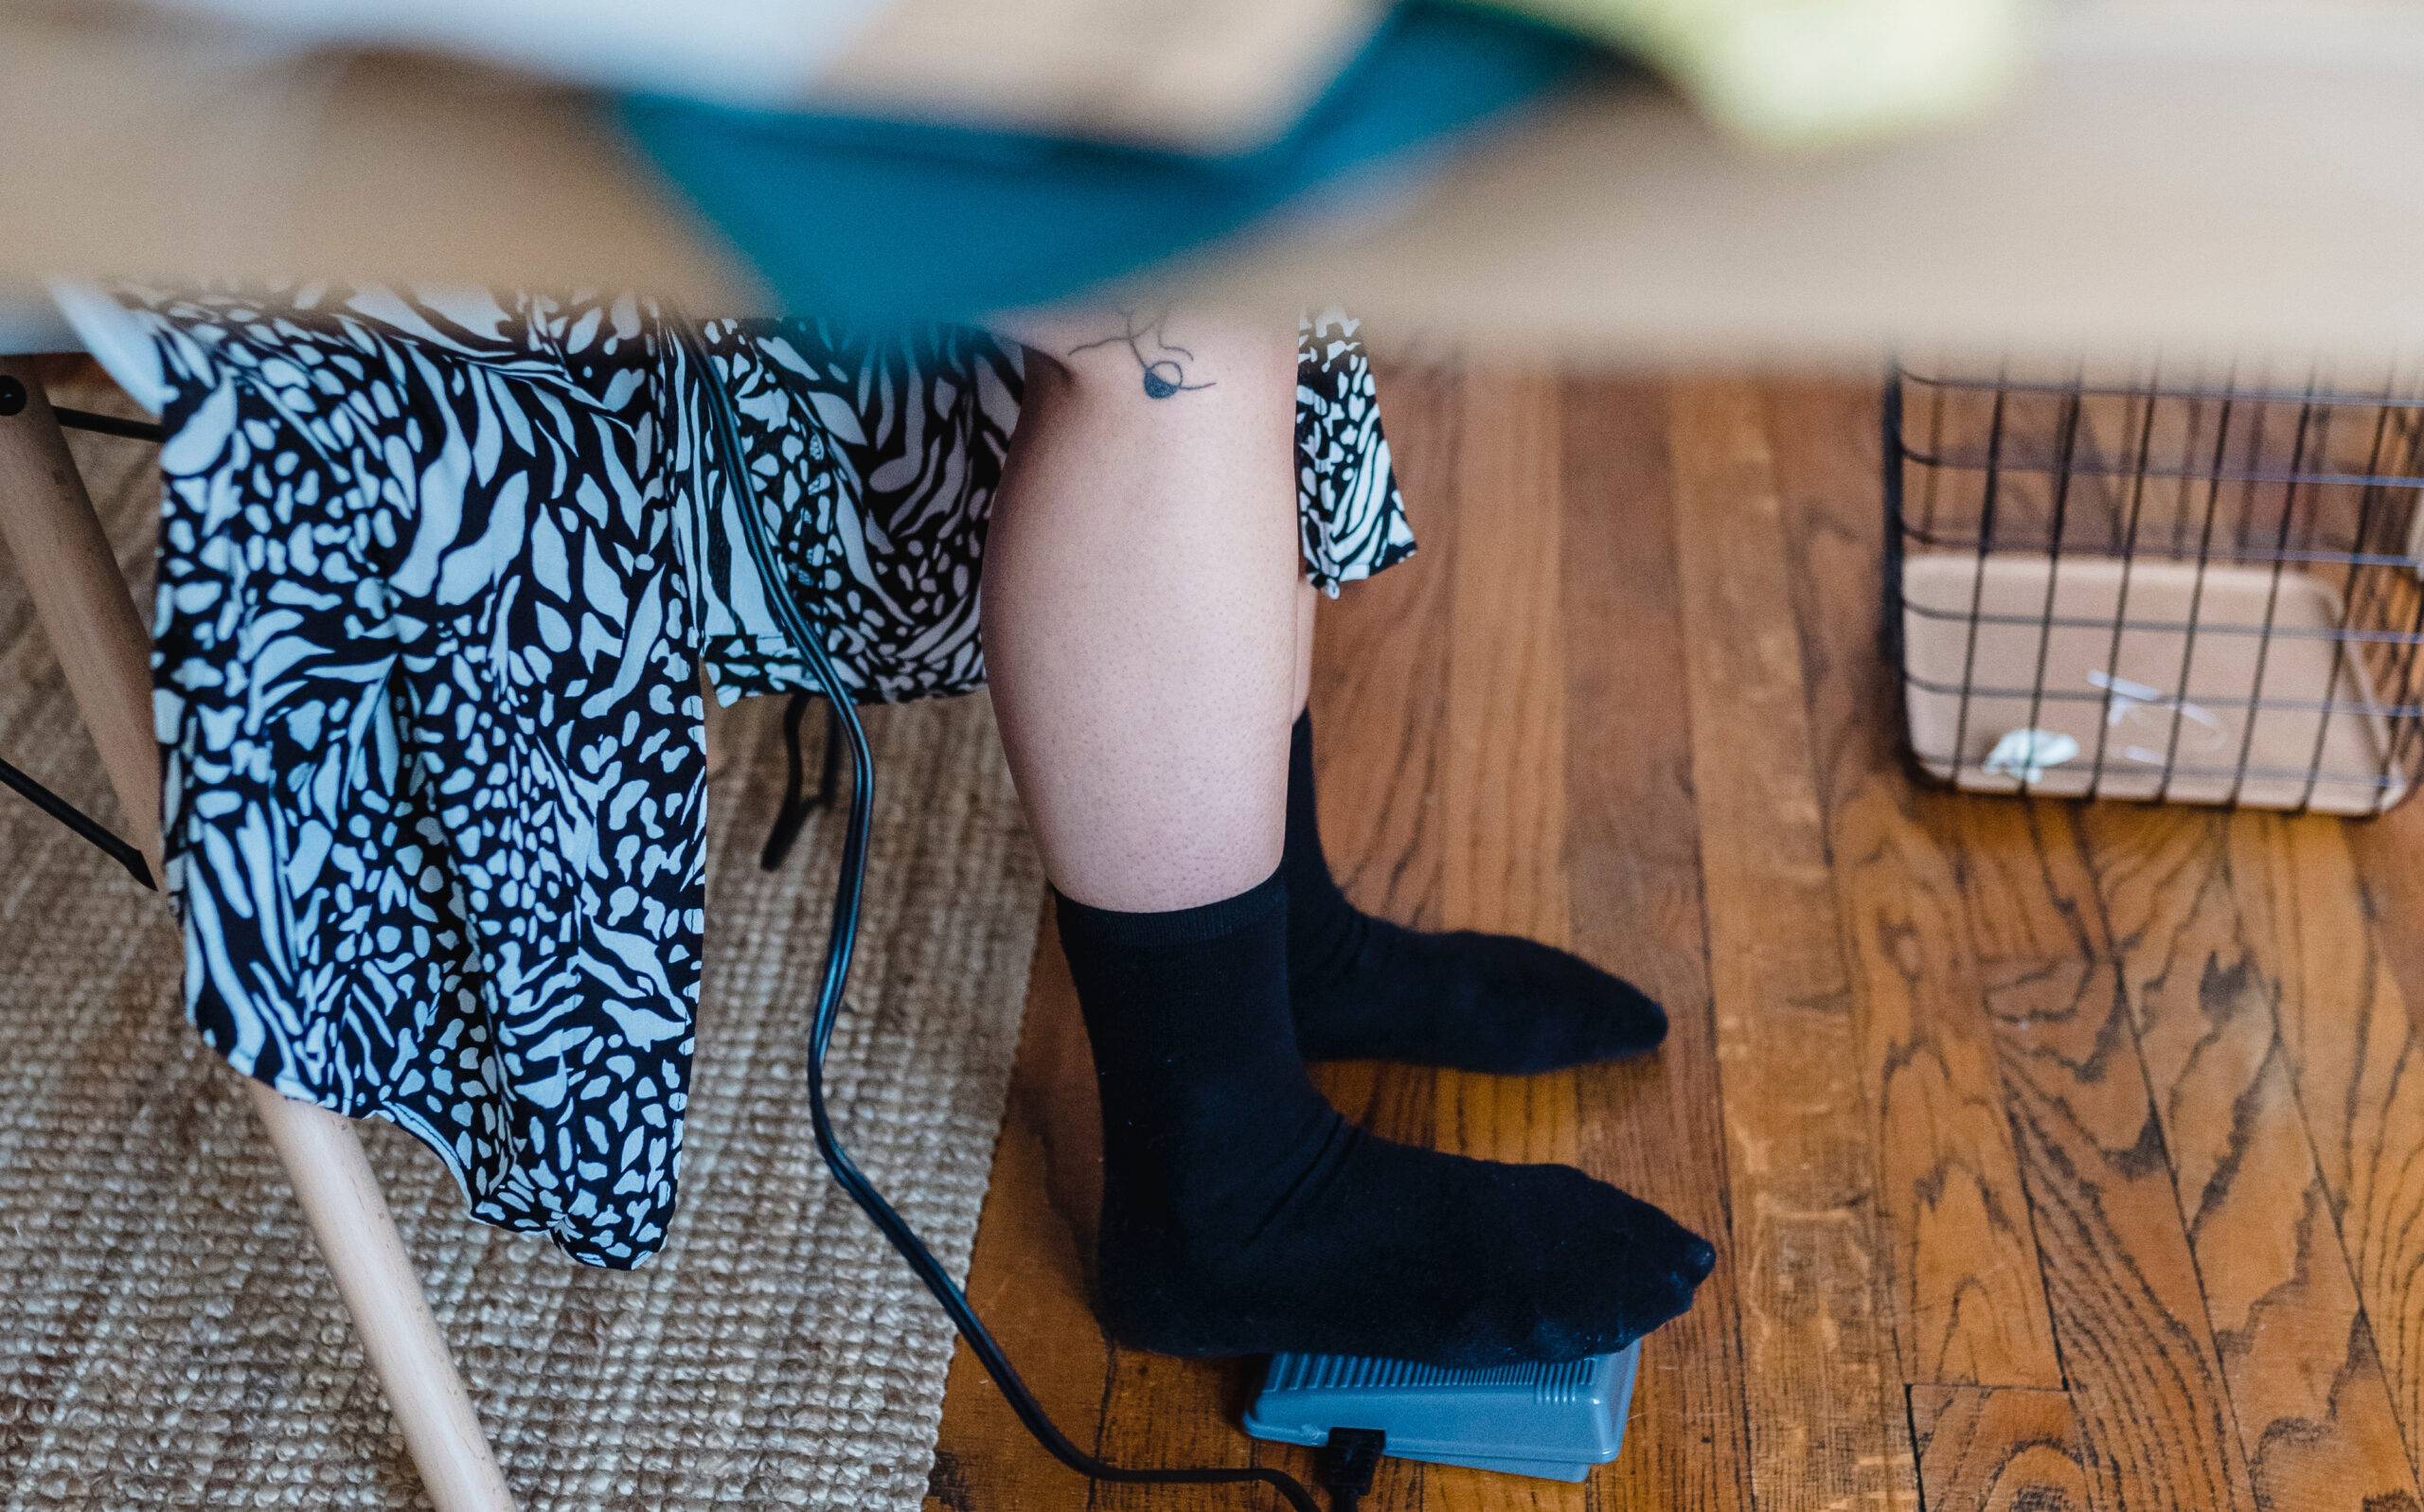 Do all sewing machines have foot pedals?